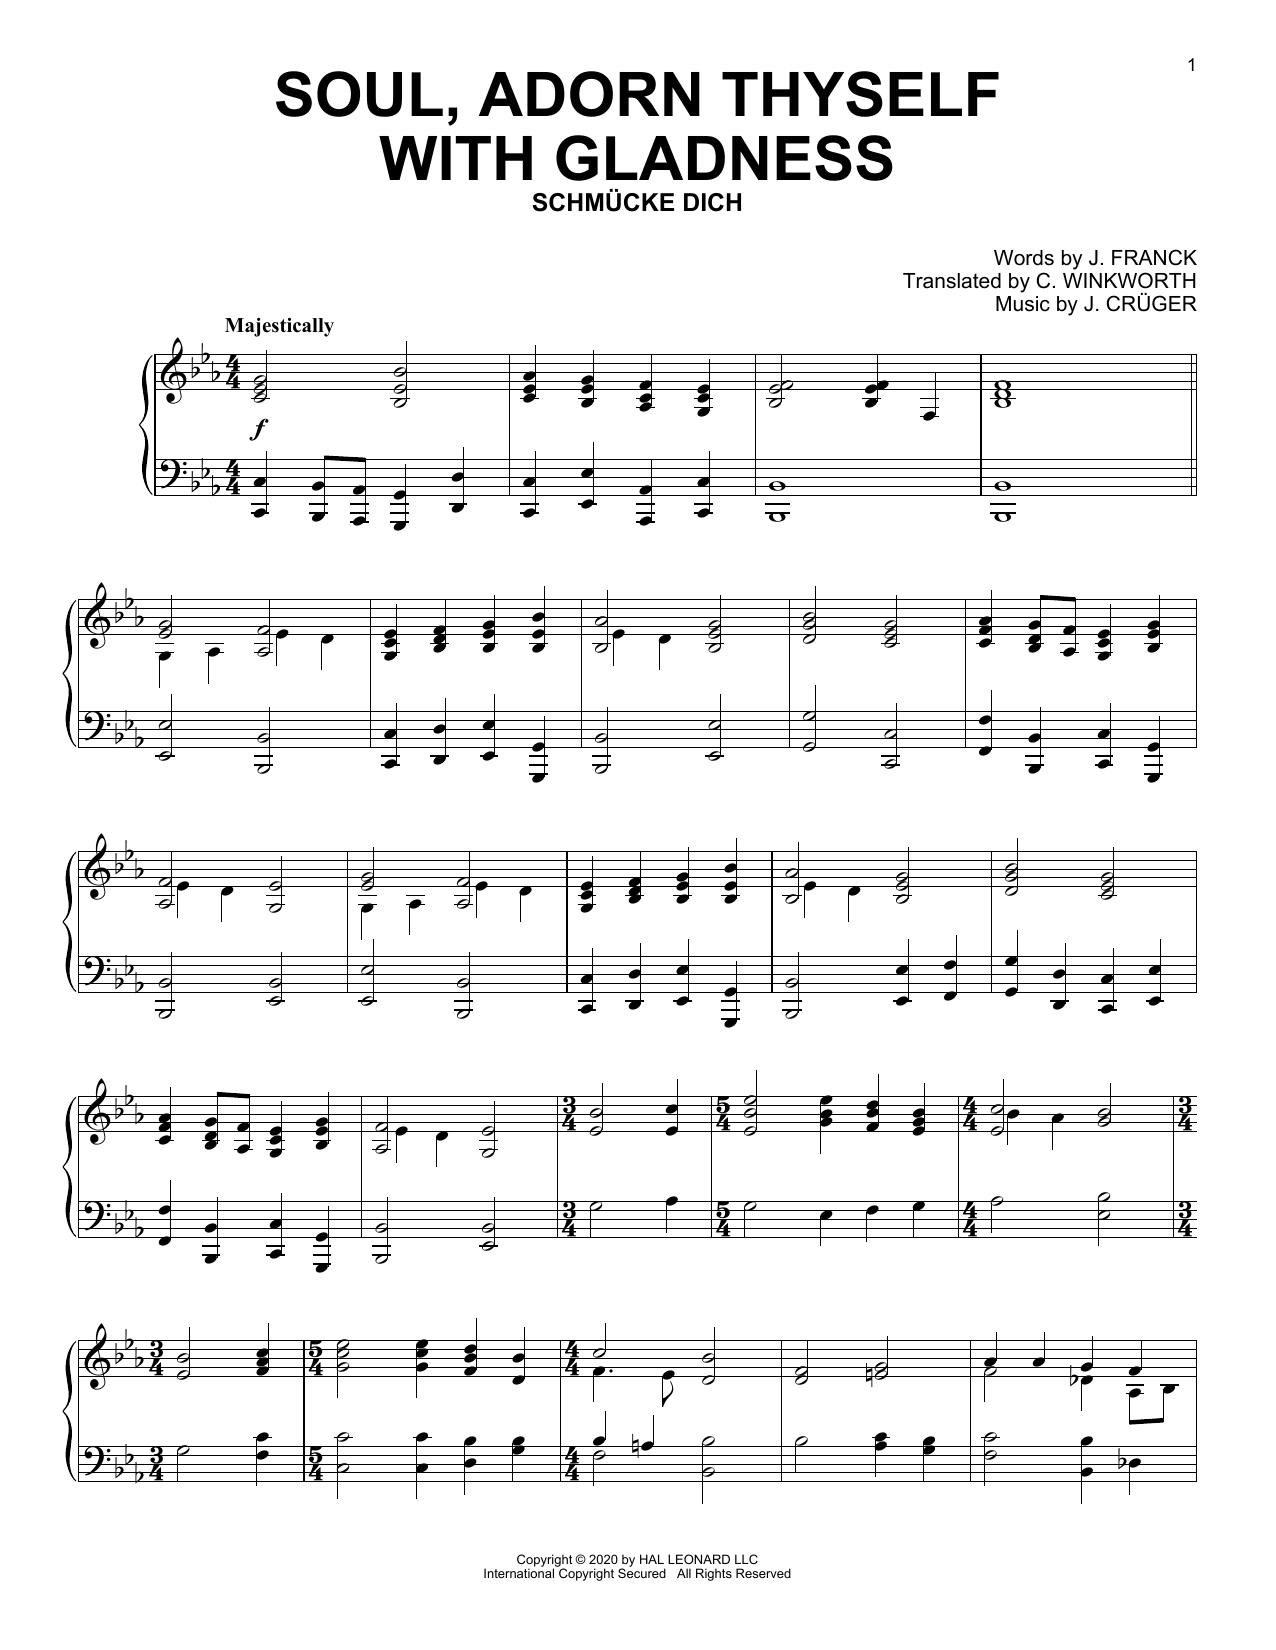 J. Cruger Soul, Adorn Thyself With Gladness Sheet Music Notes, Chords    Download Printable Piano Solo PDF Score   SKU 15